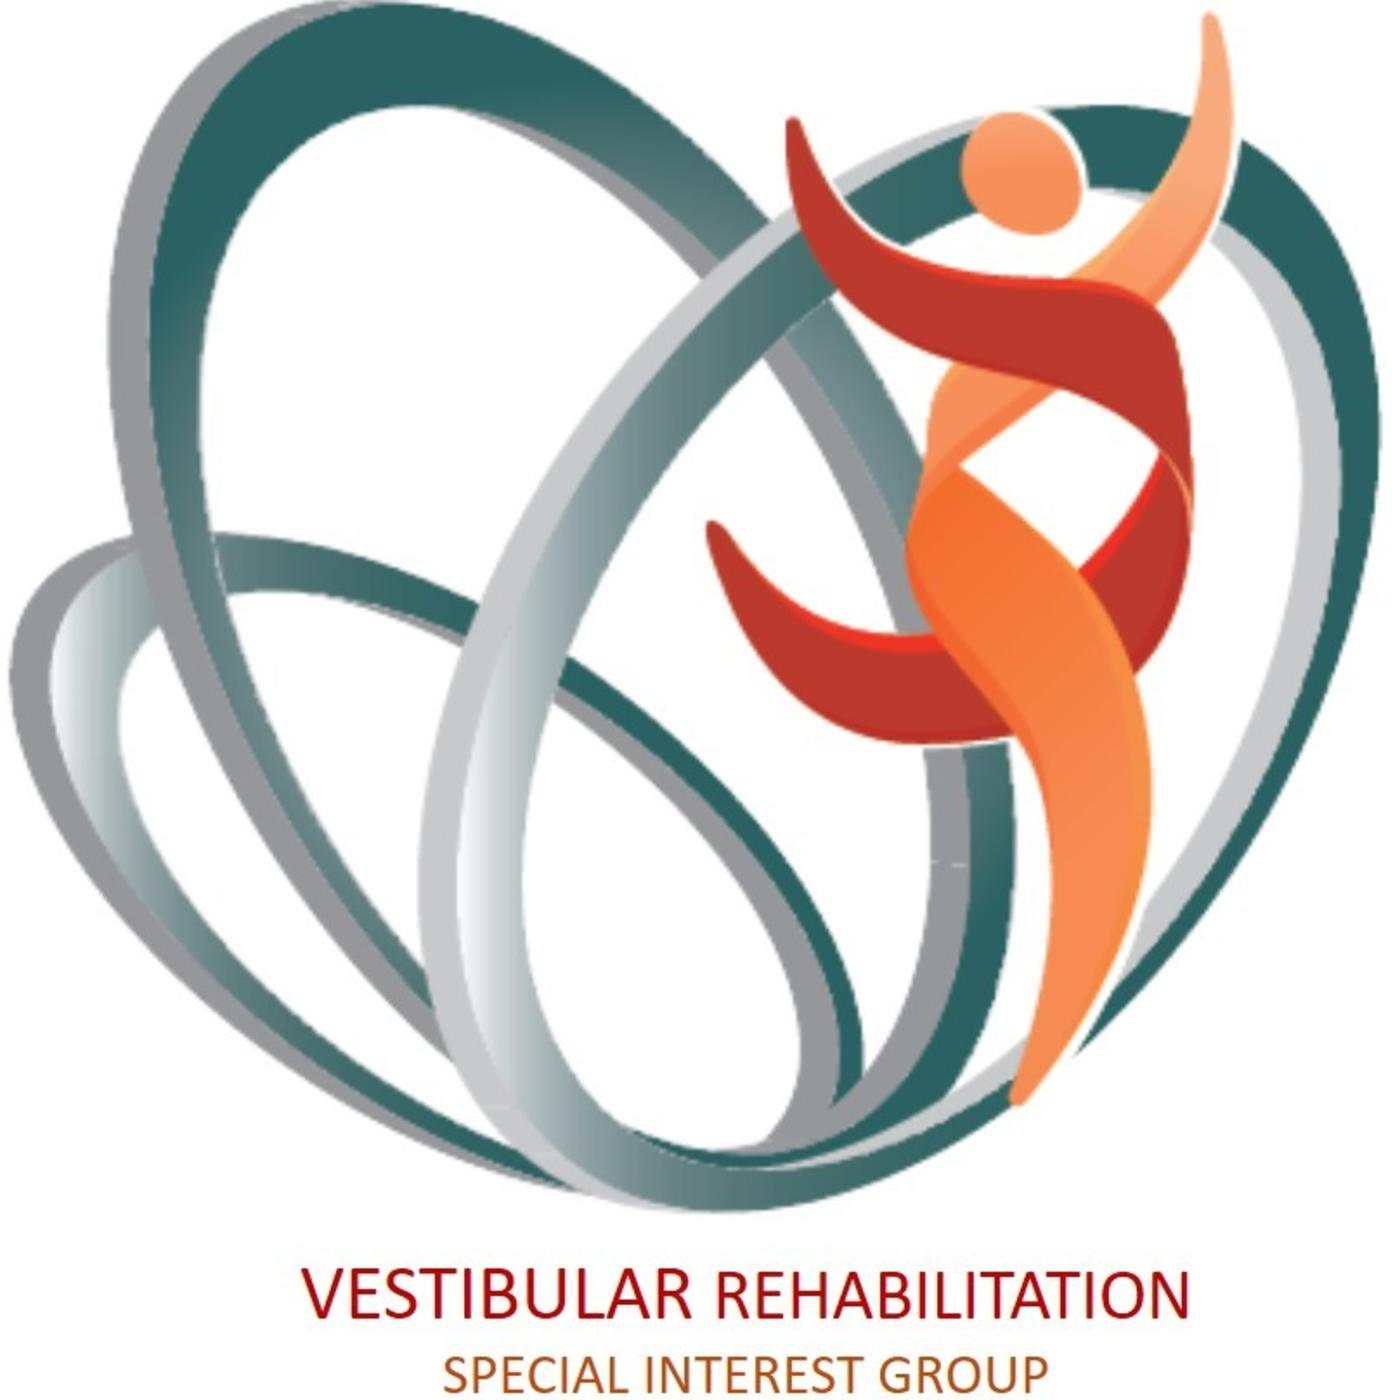 Does Exercise Increase Vestibular and Ocular Motor Symptom Detection After Sport-Related Concussion?